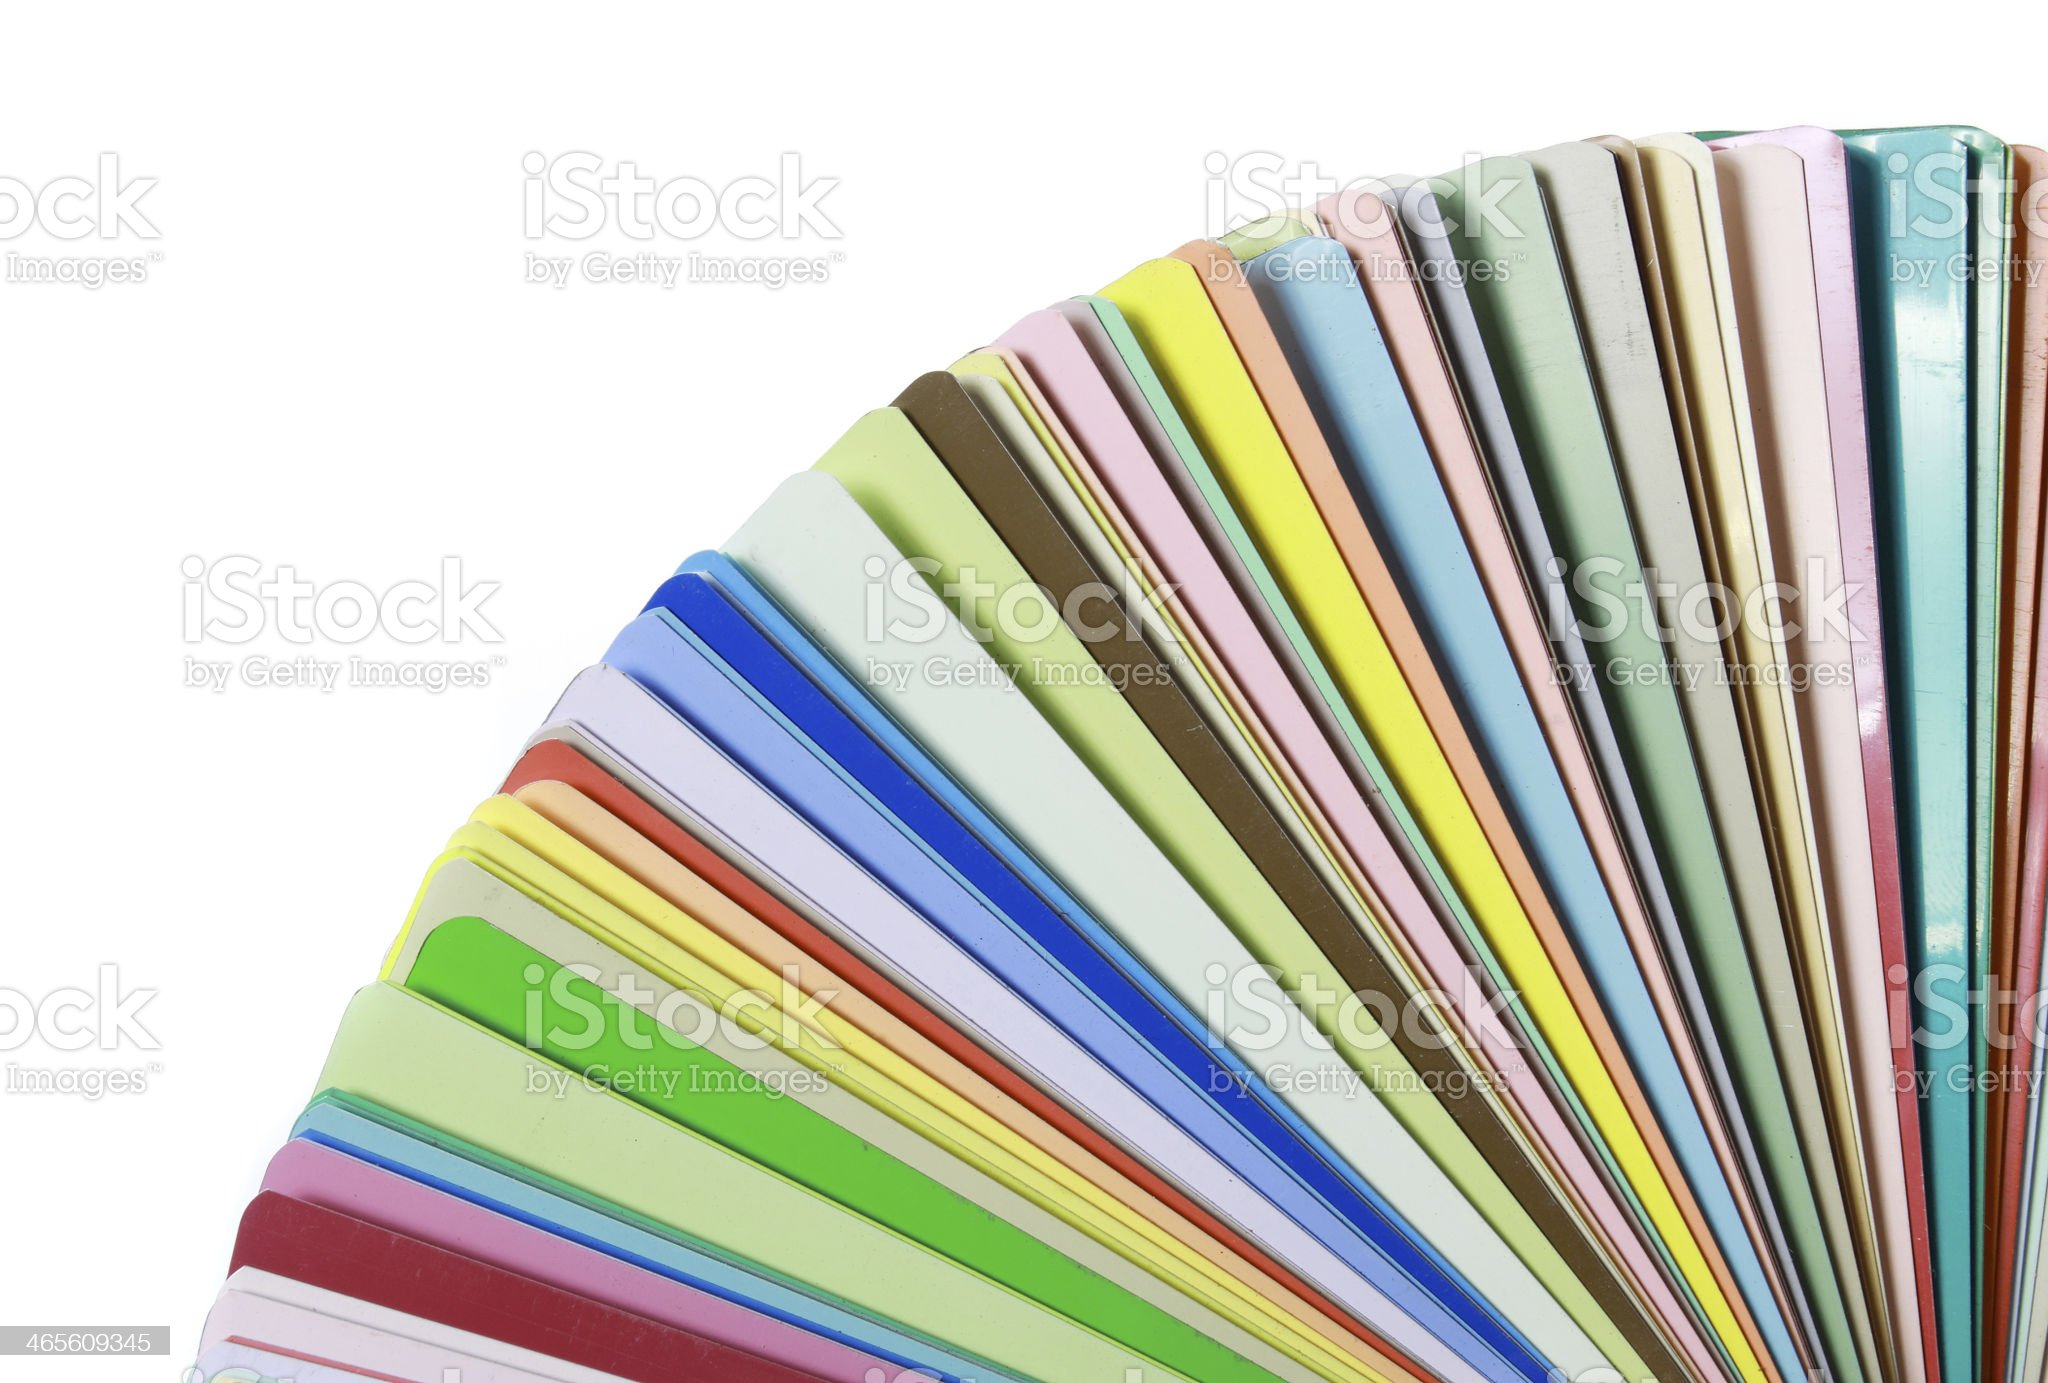 Colorful color guide samples on white background royalty-free stock photo